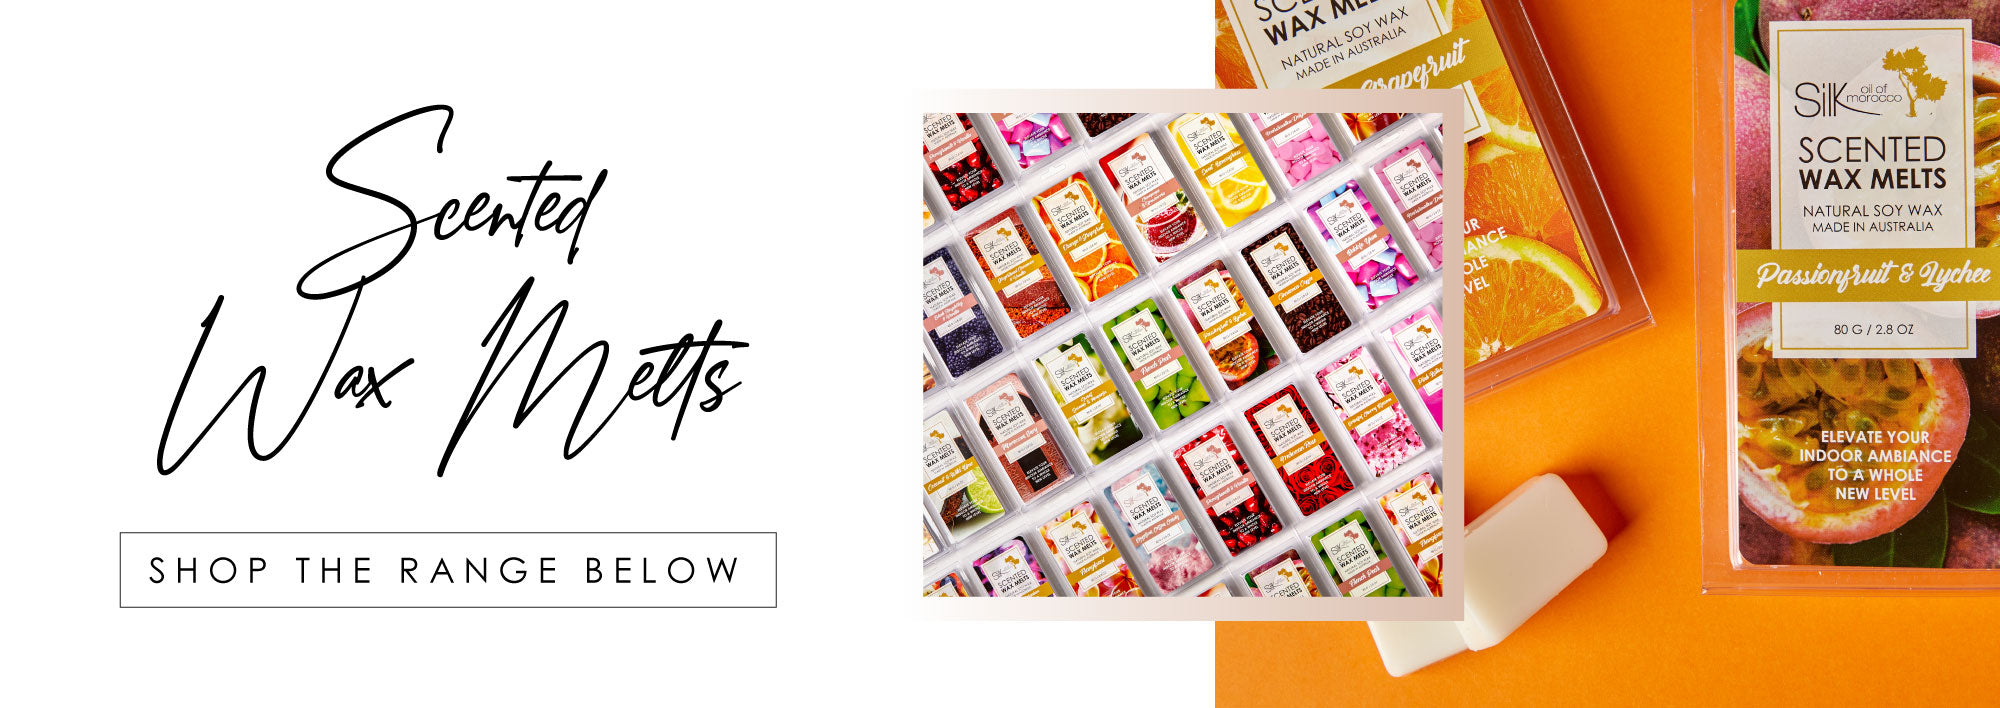 Silk Oil of Morocco Scented Wax Melts